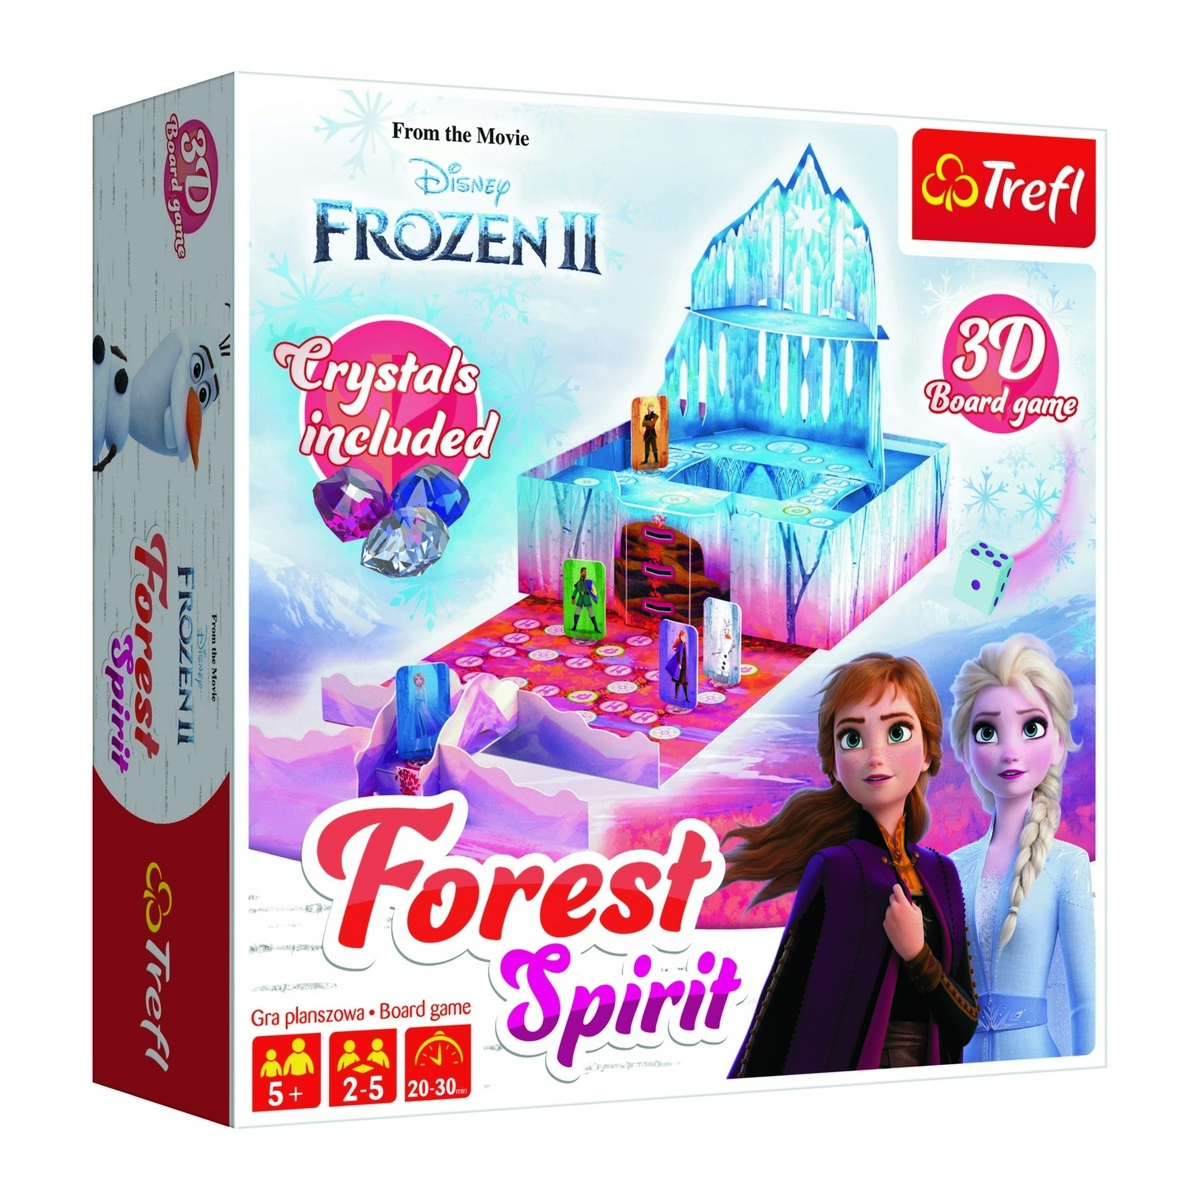 Trefl hra Forest spirit Frozen 2